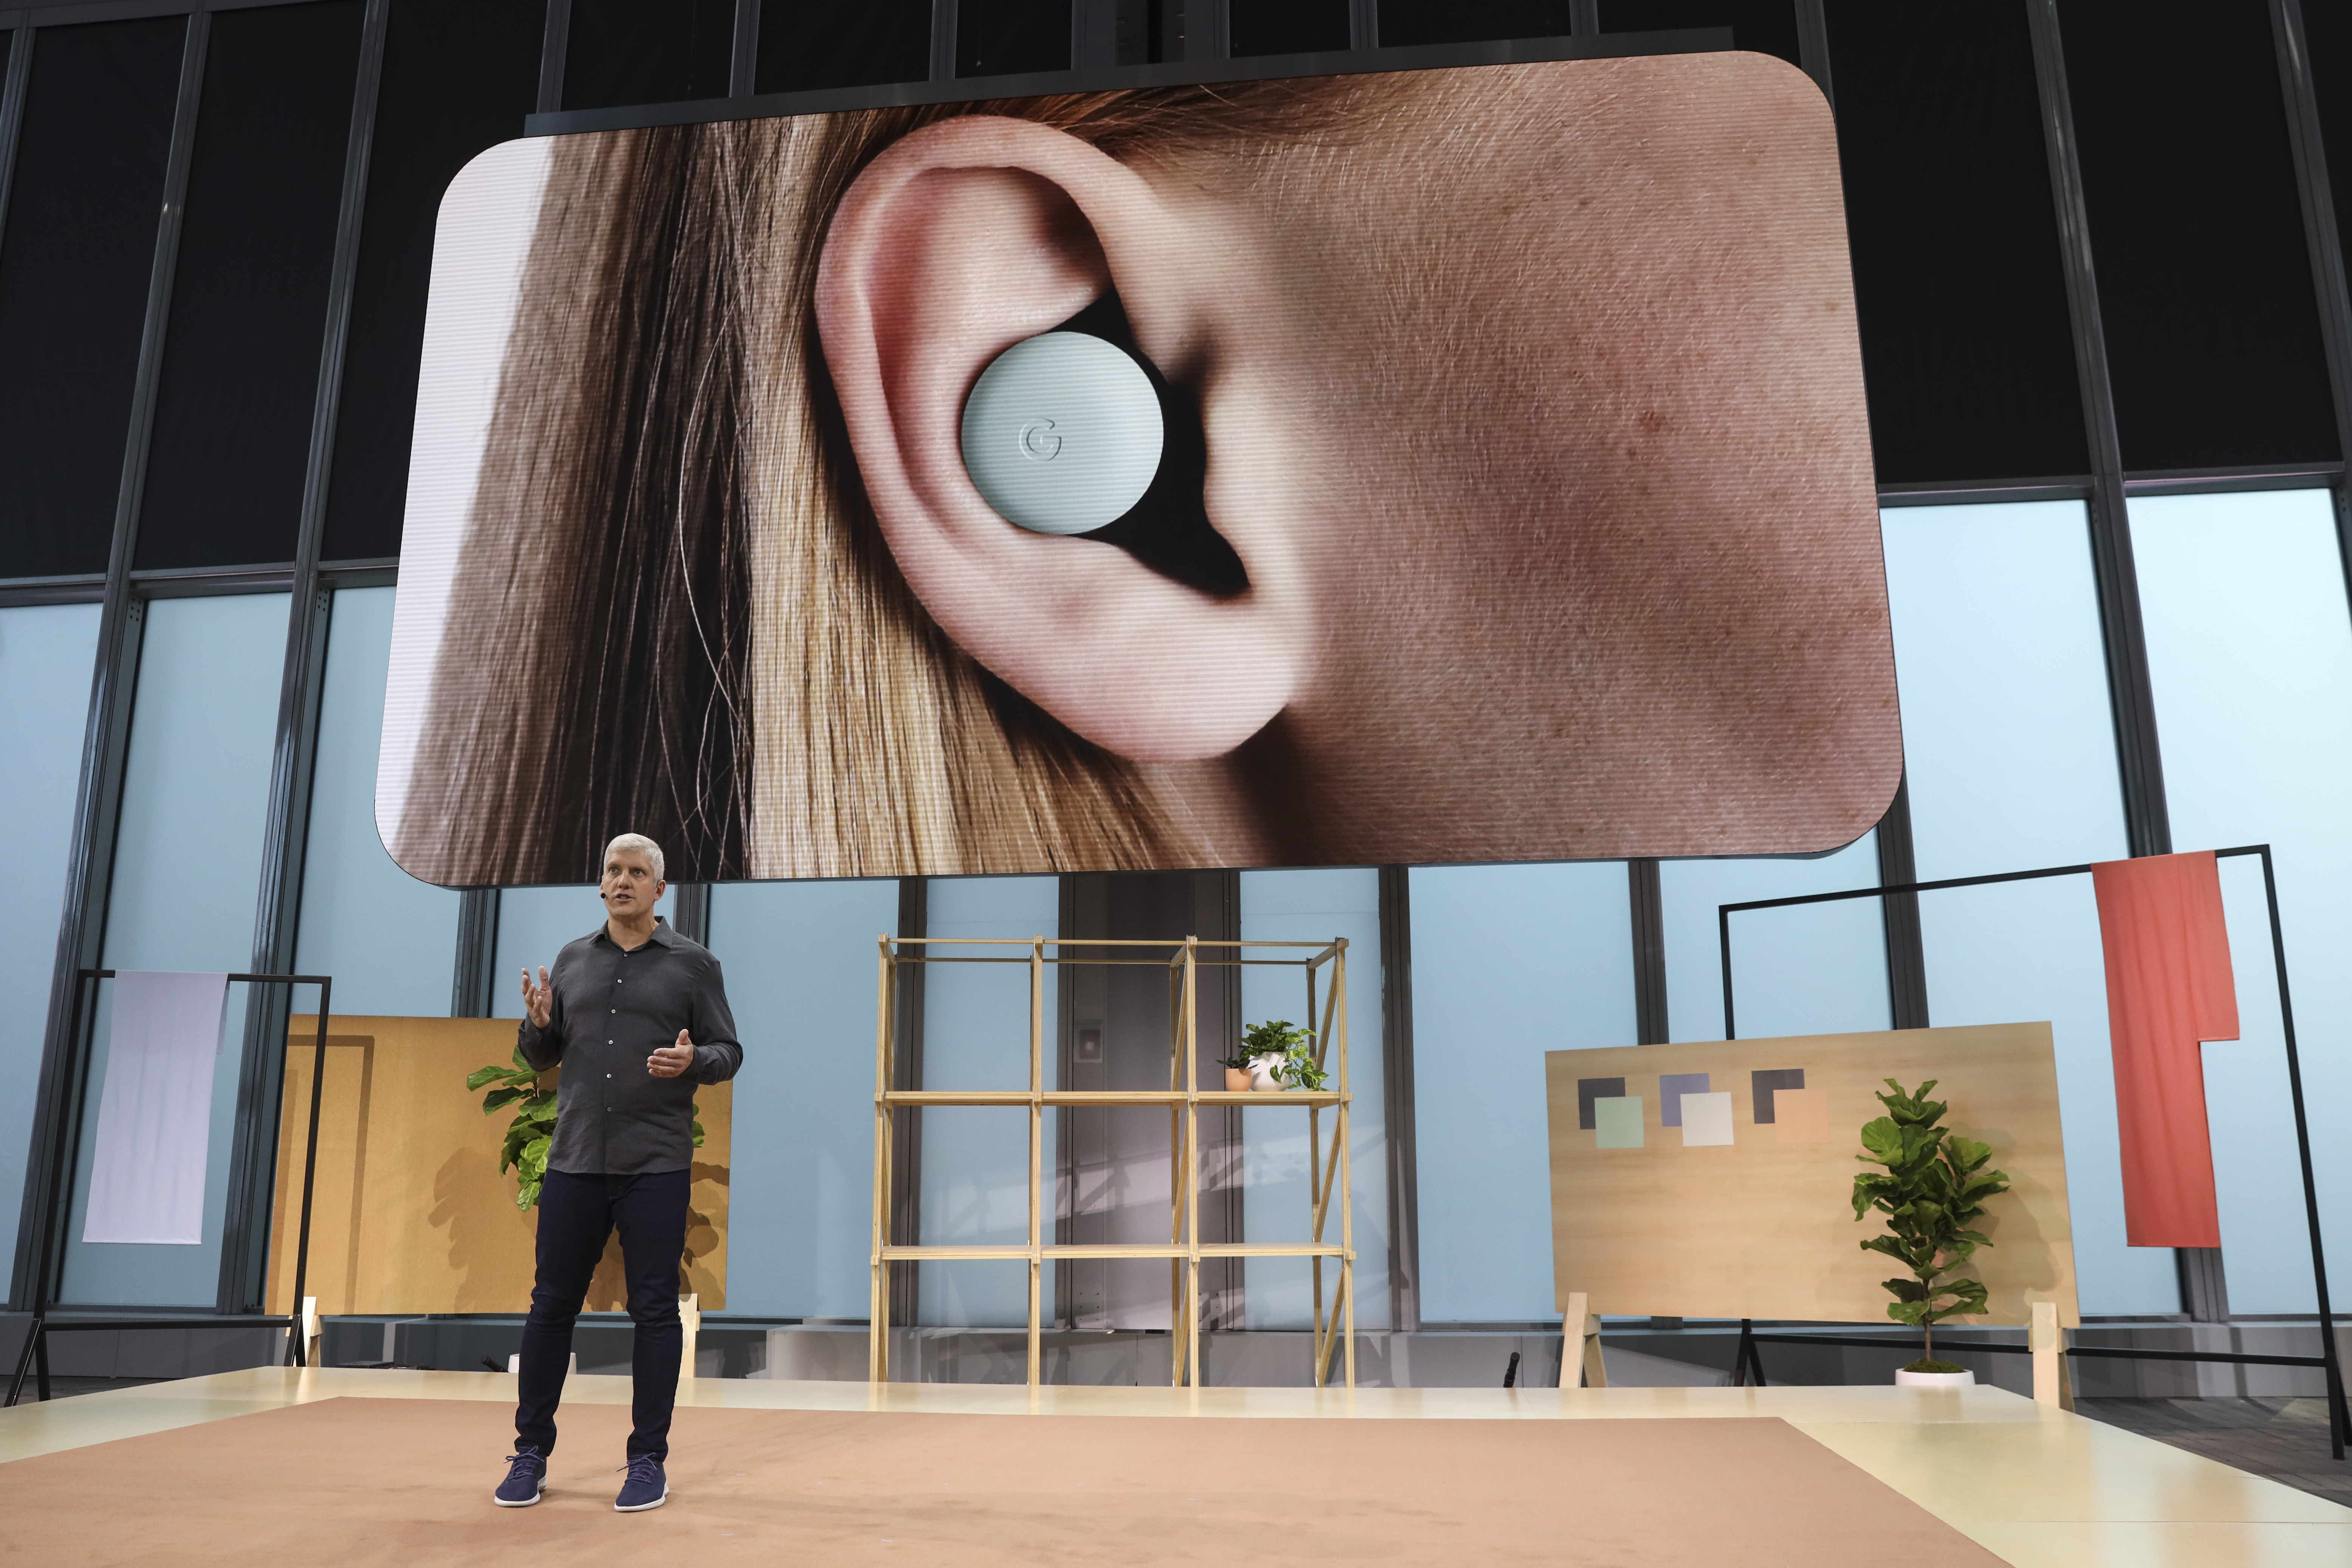 Google leaks its own 'Pixel Buds A-Series' with new fast pairing tech – Engadget